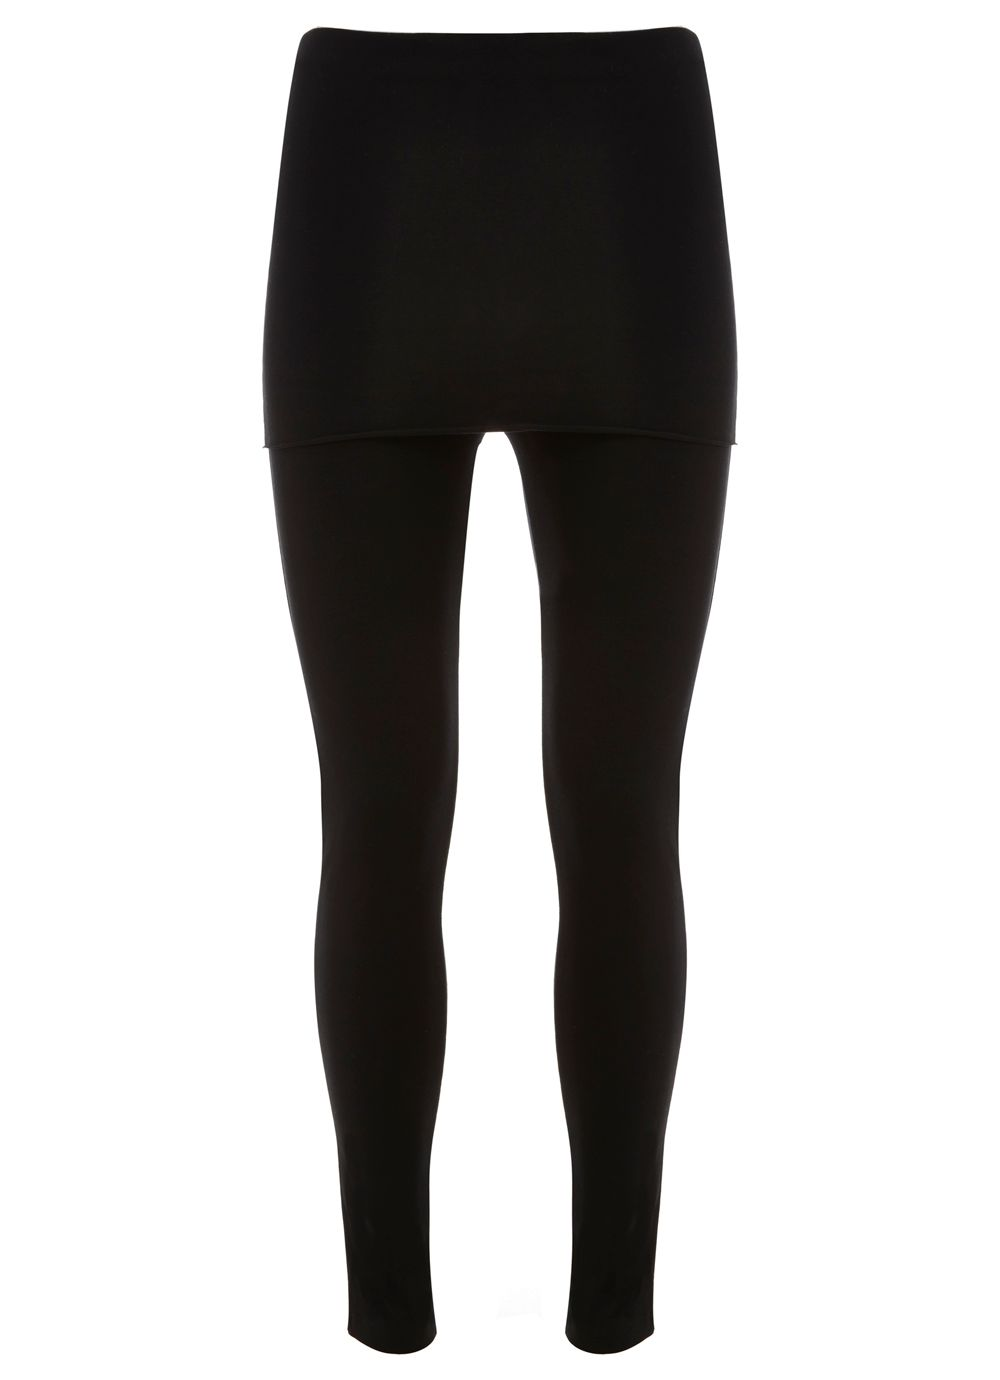 Mint Velvet Black Skirted Legging, Black